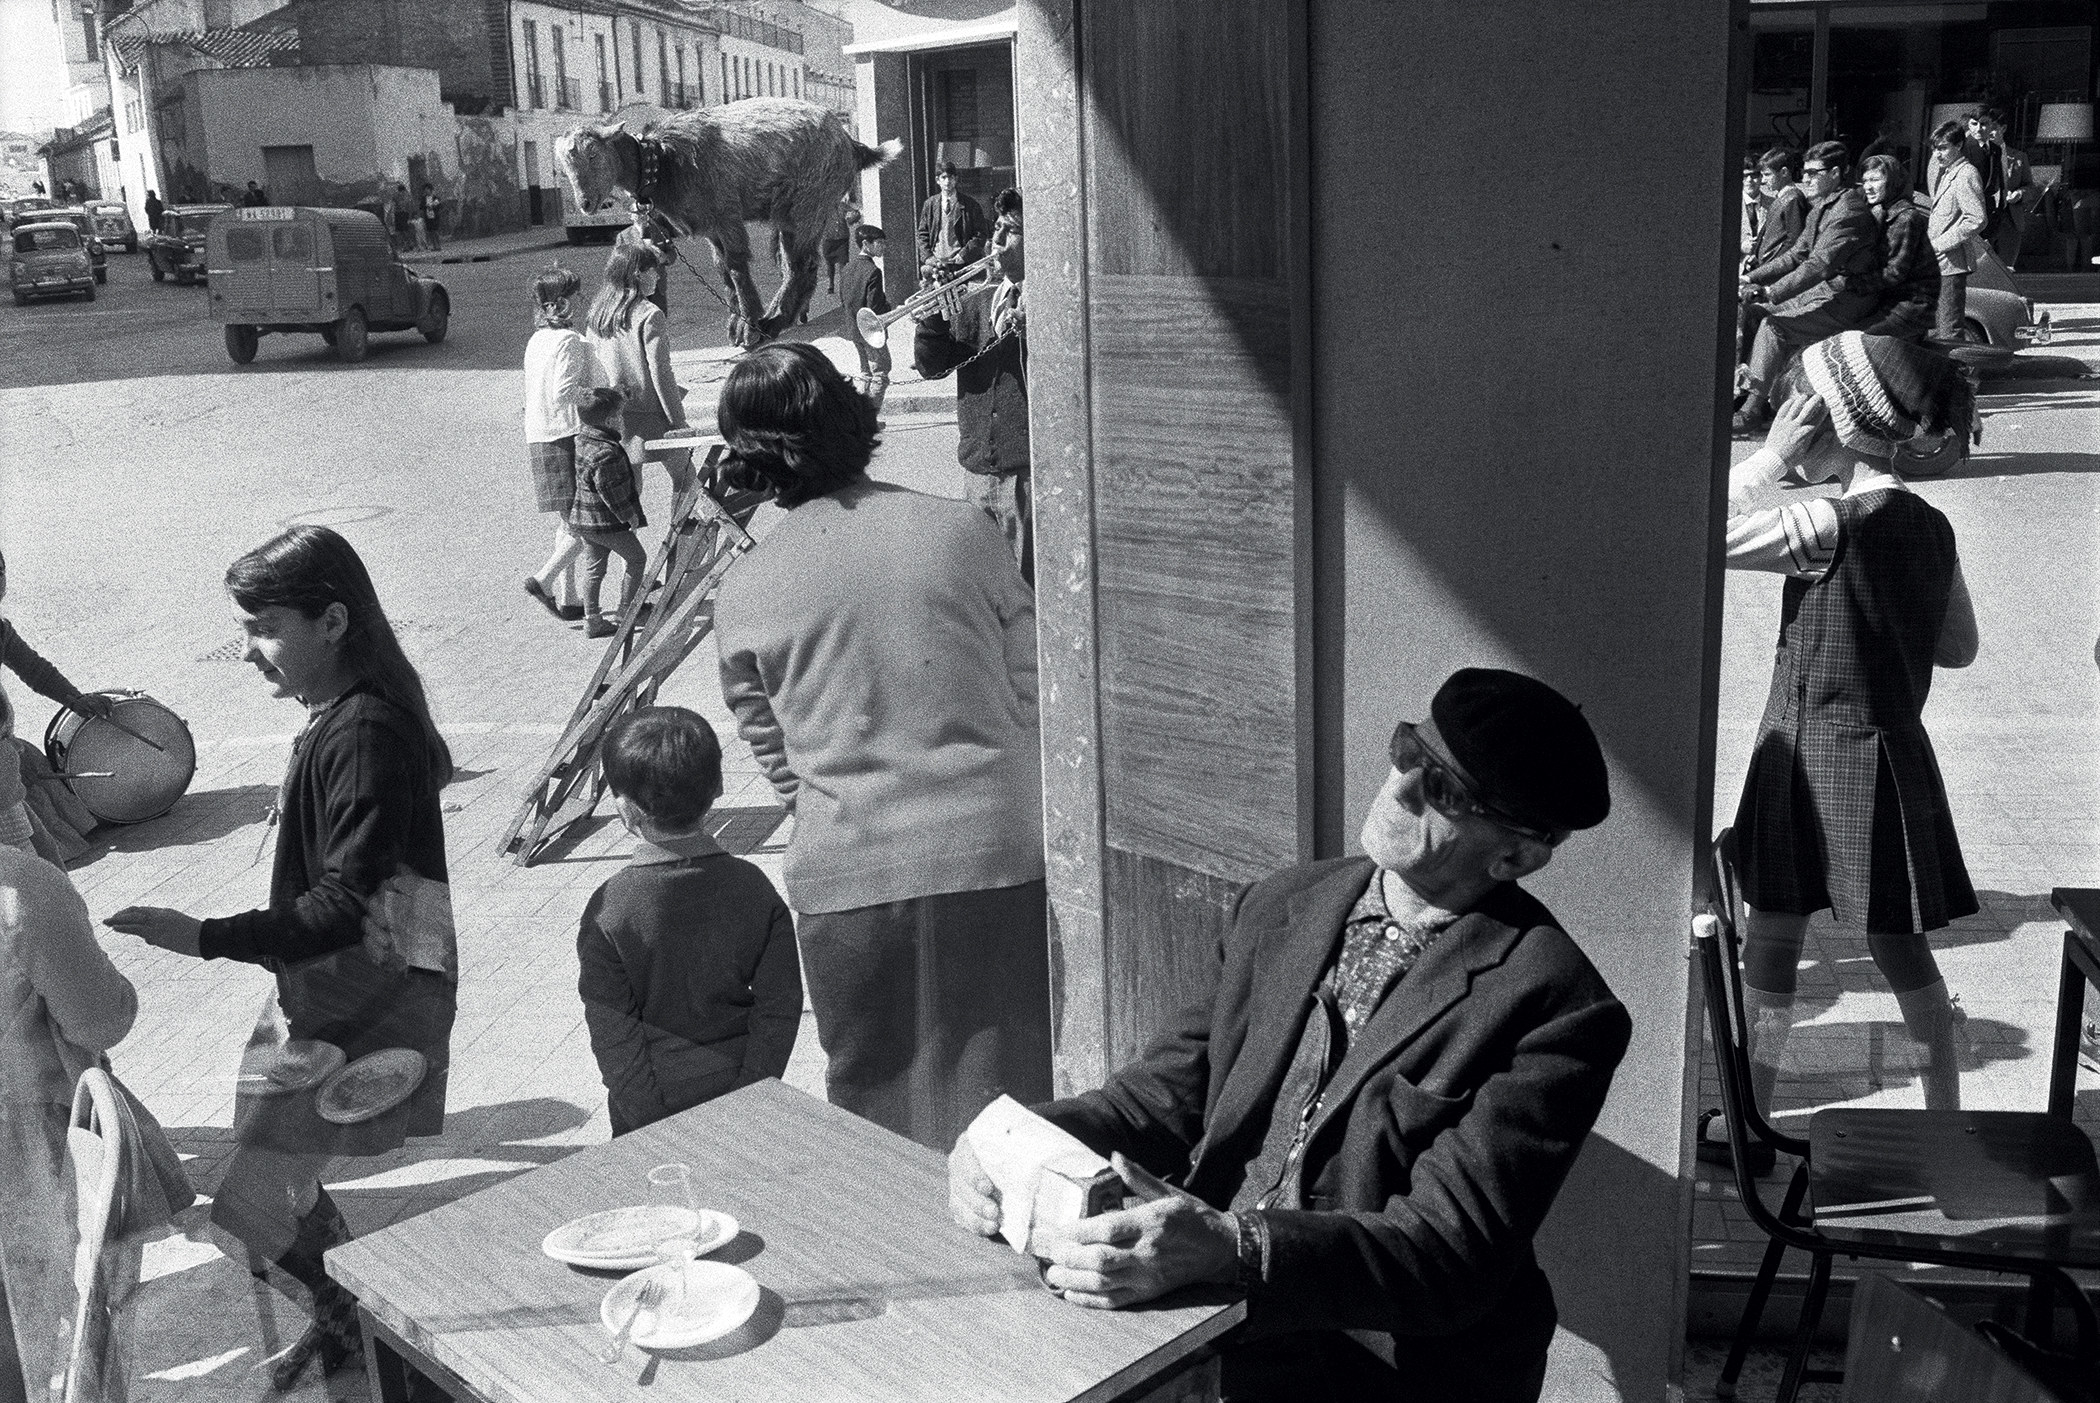 A man in sunglasses sits in a café while crowds of pedestrians are visible through the window